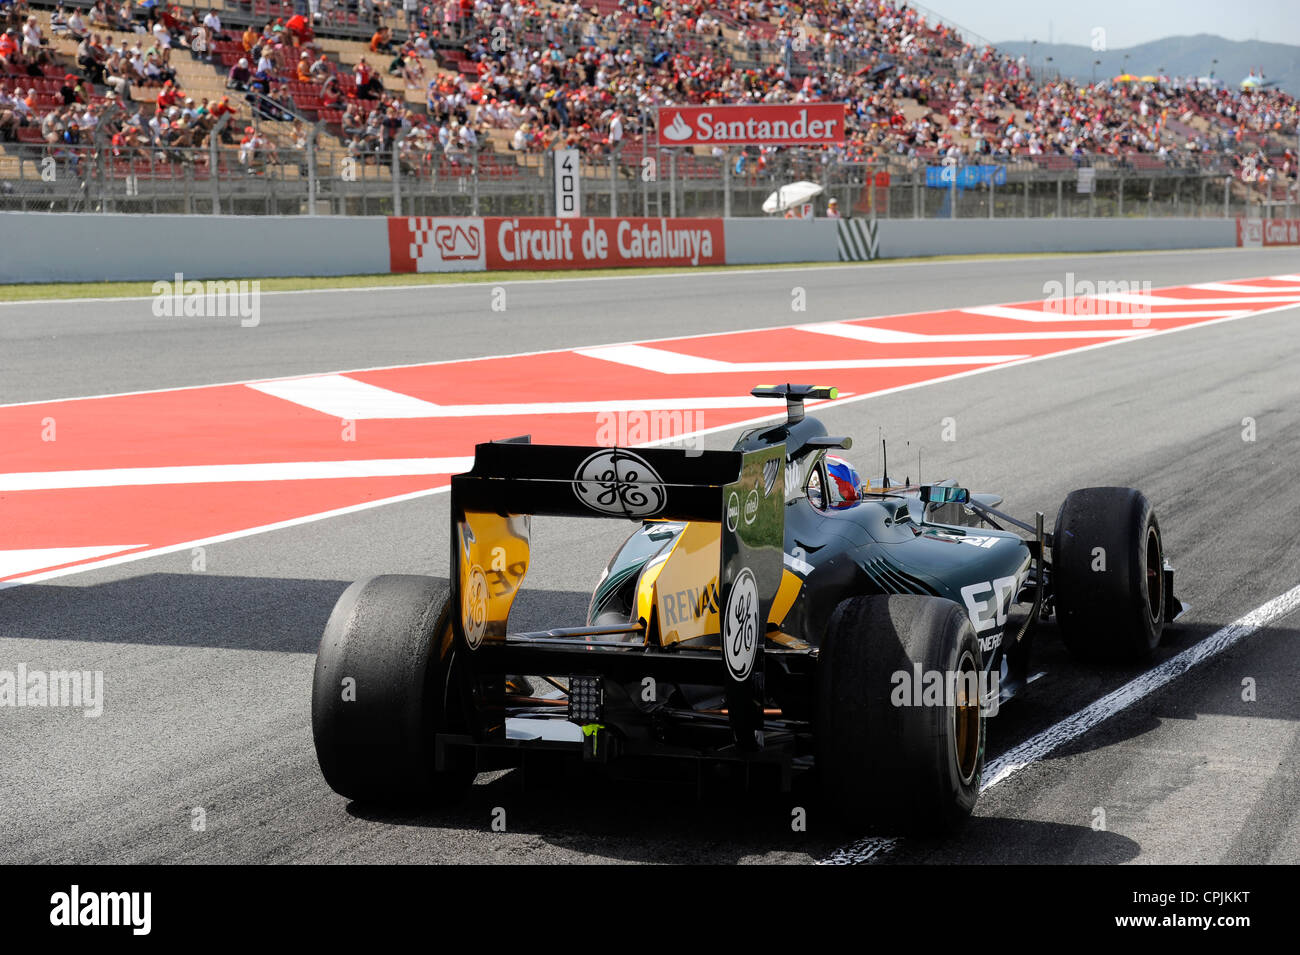 Witali (Vitaly) Petrow (Petrov) (RUS) im Caterham CT01 during the Formula One Grand Prix of Spain 2012 - Stock Image